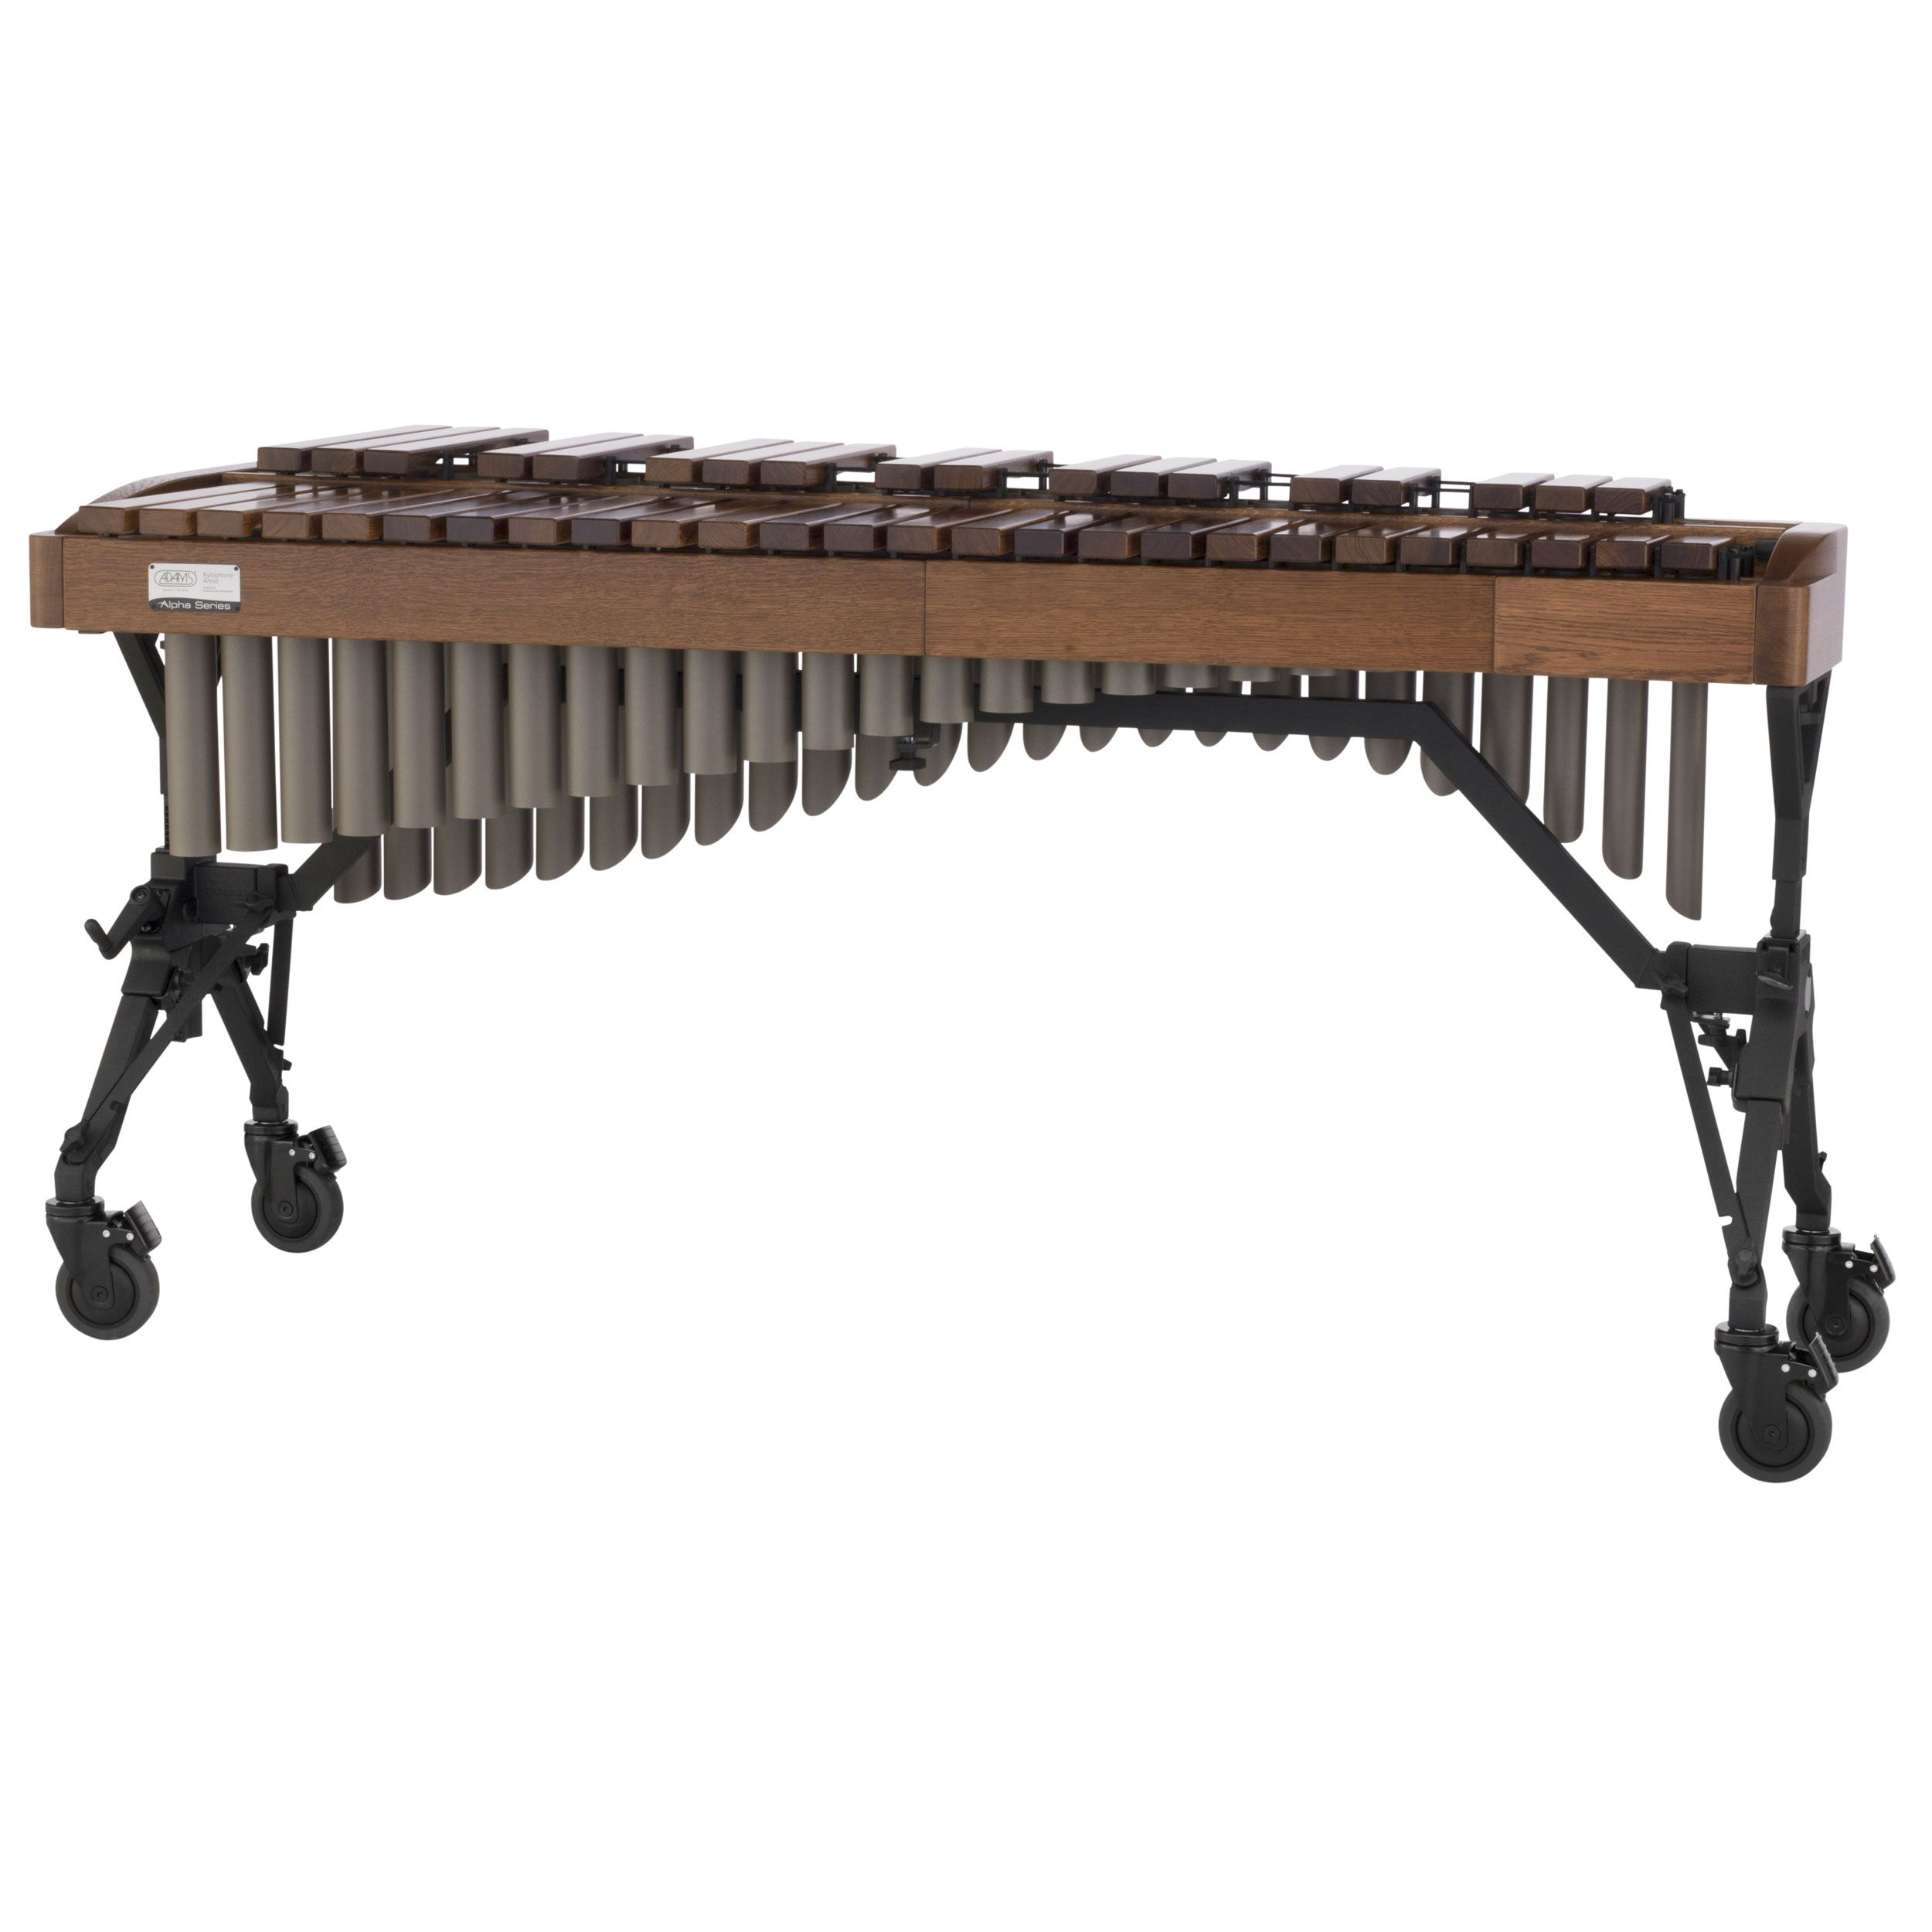 Adams 3.5 Octave Alpha Rosewood Xylophone with Walnut Oak Rails & Desert Resonators